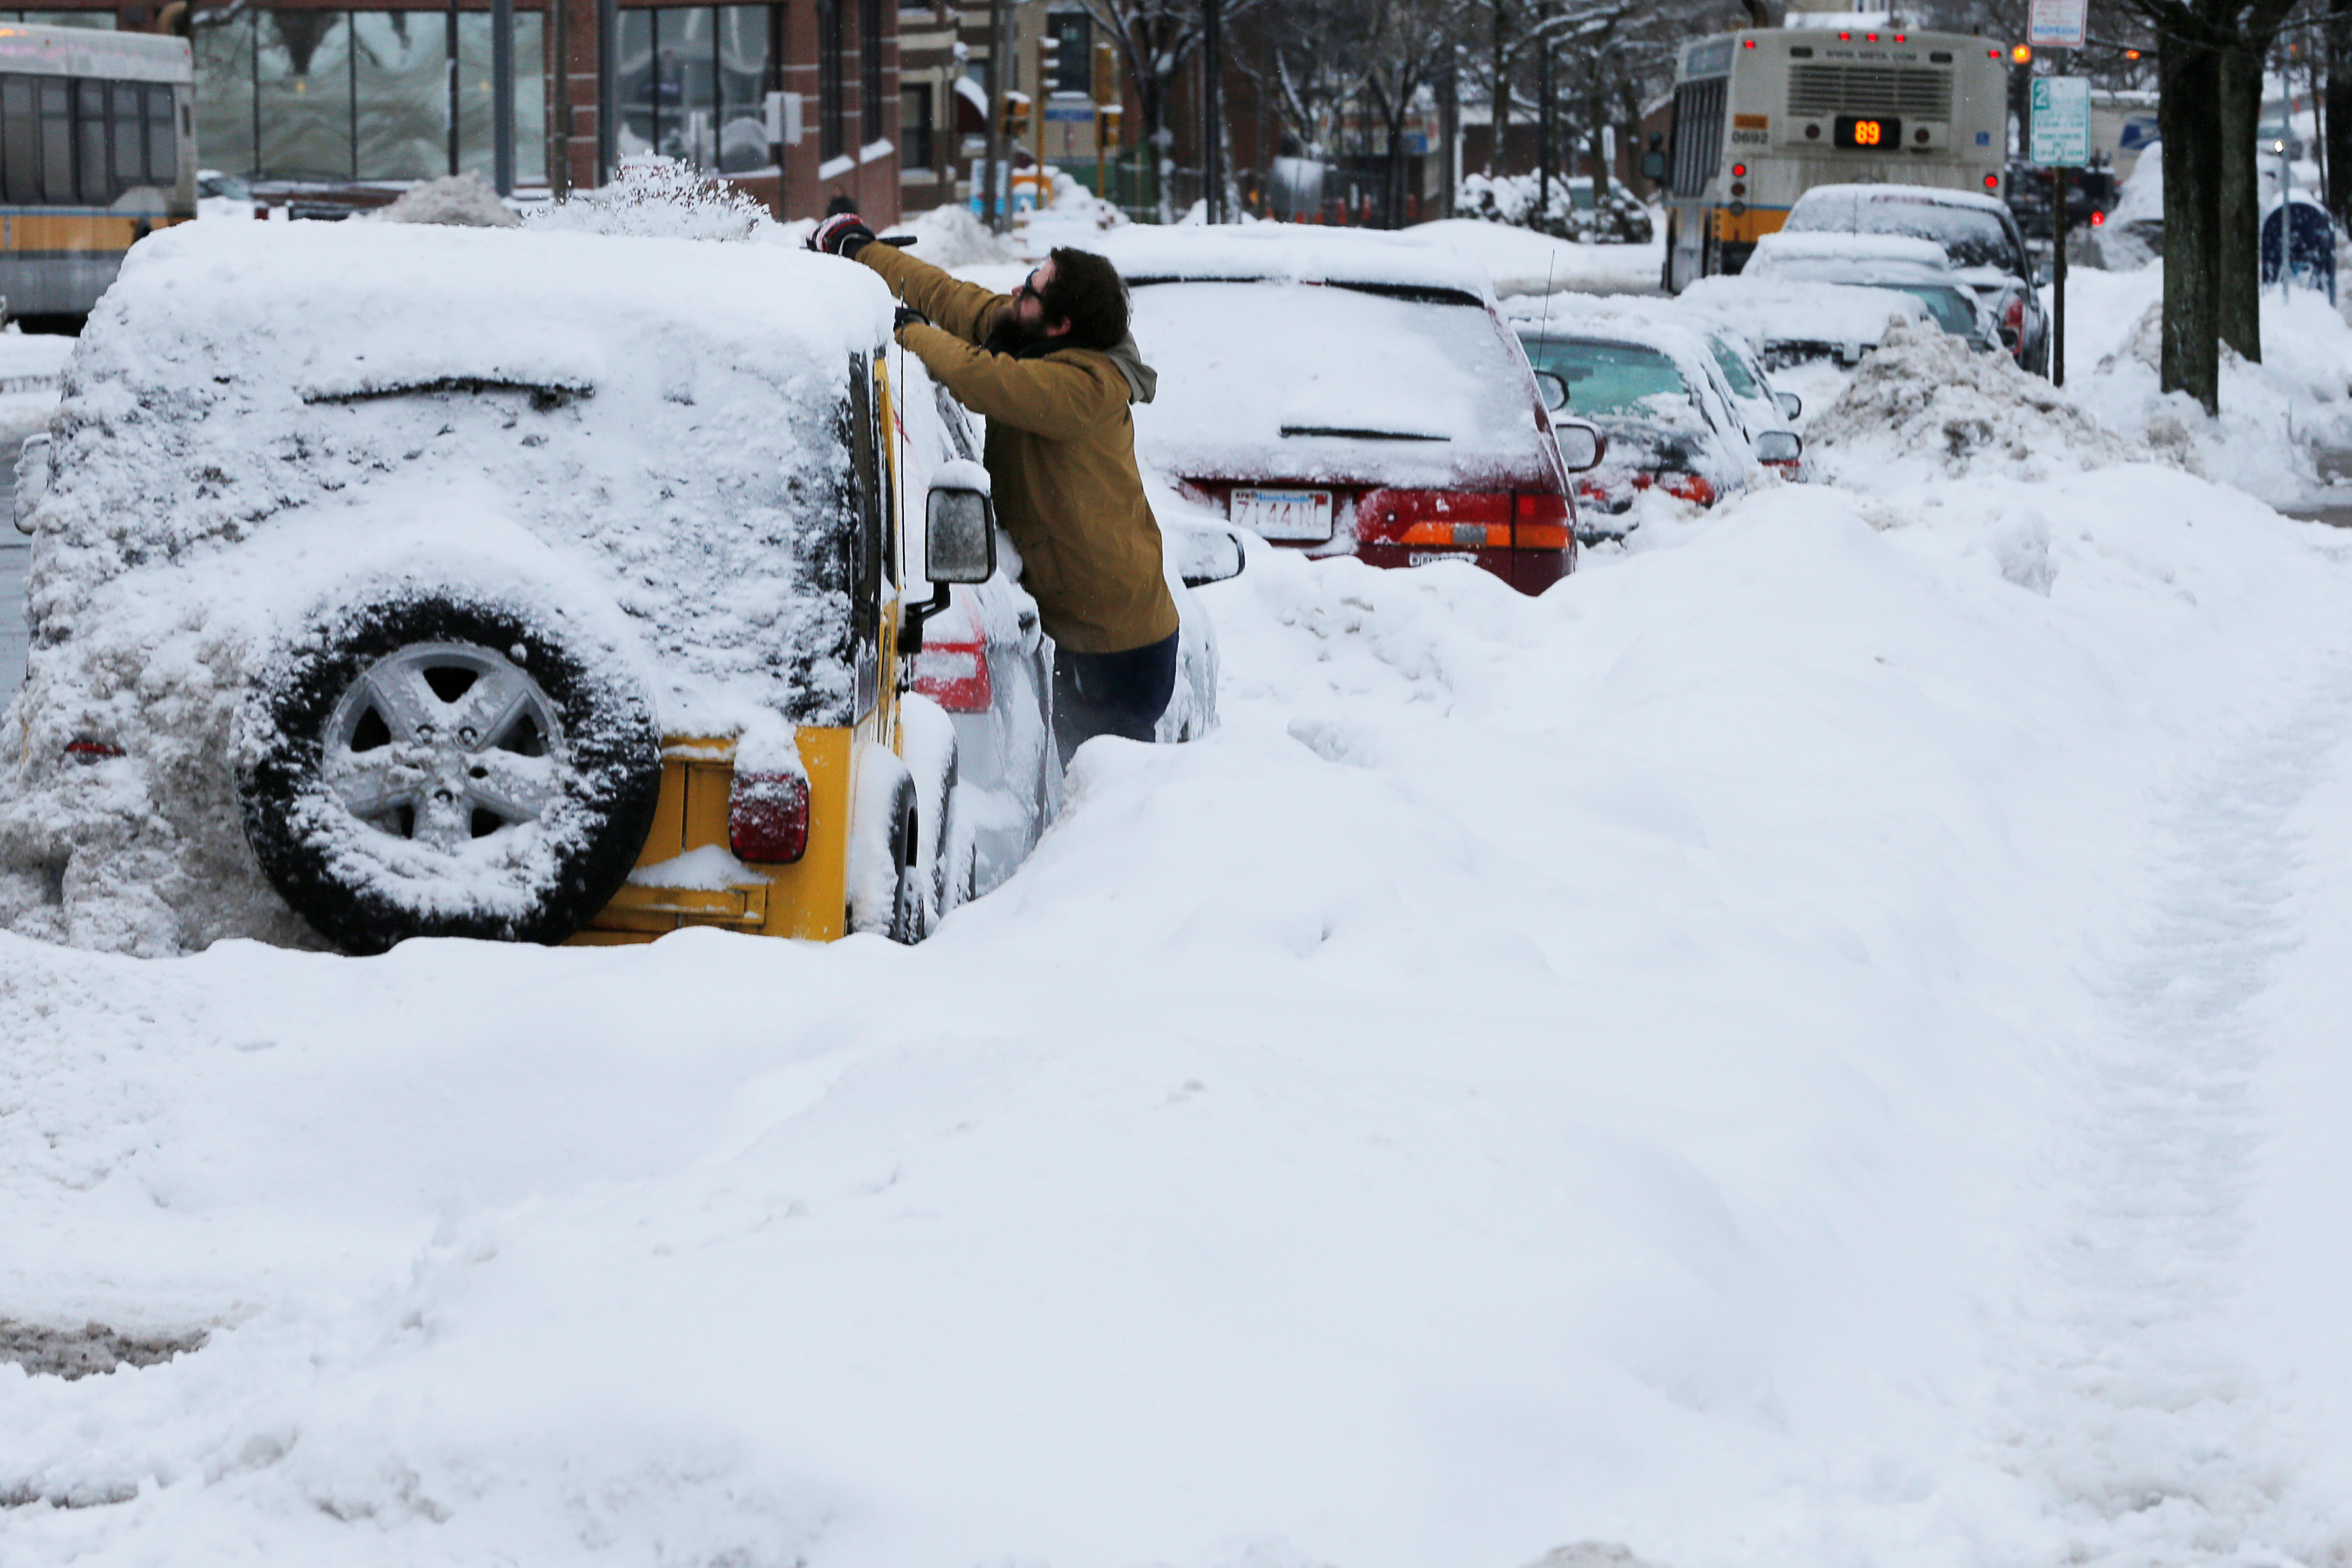 A man clears snow off his vehicle following a winter snow storm in Somerville,